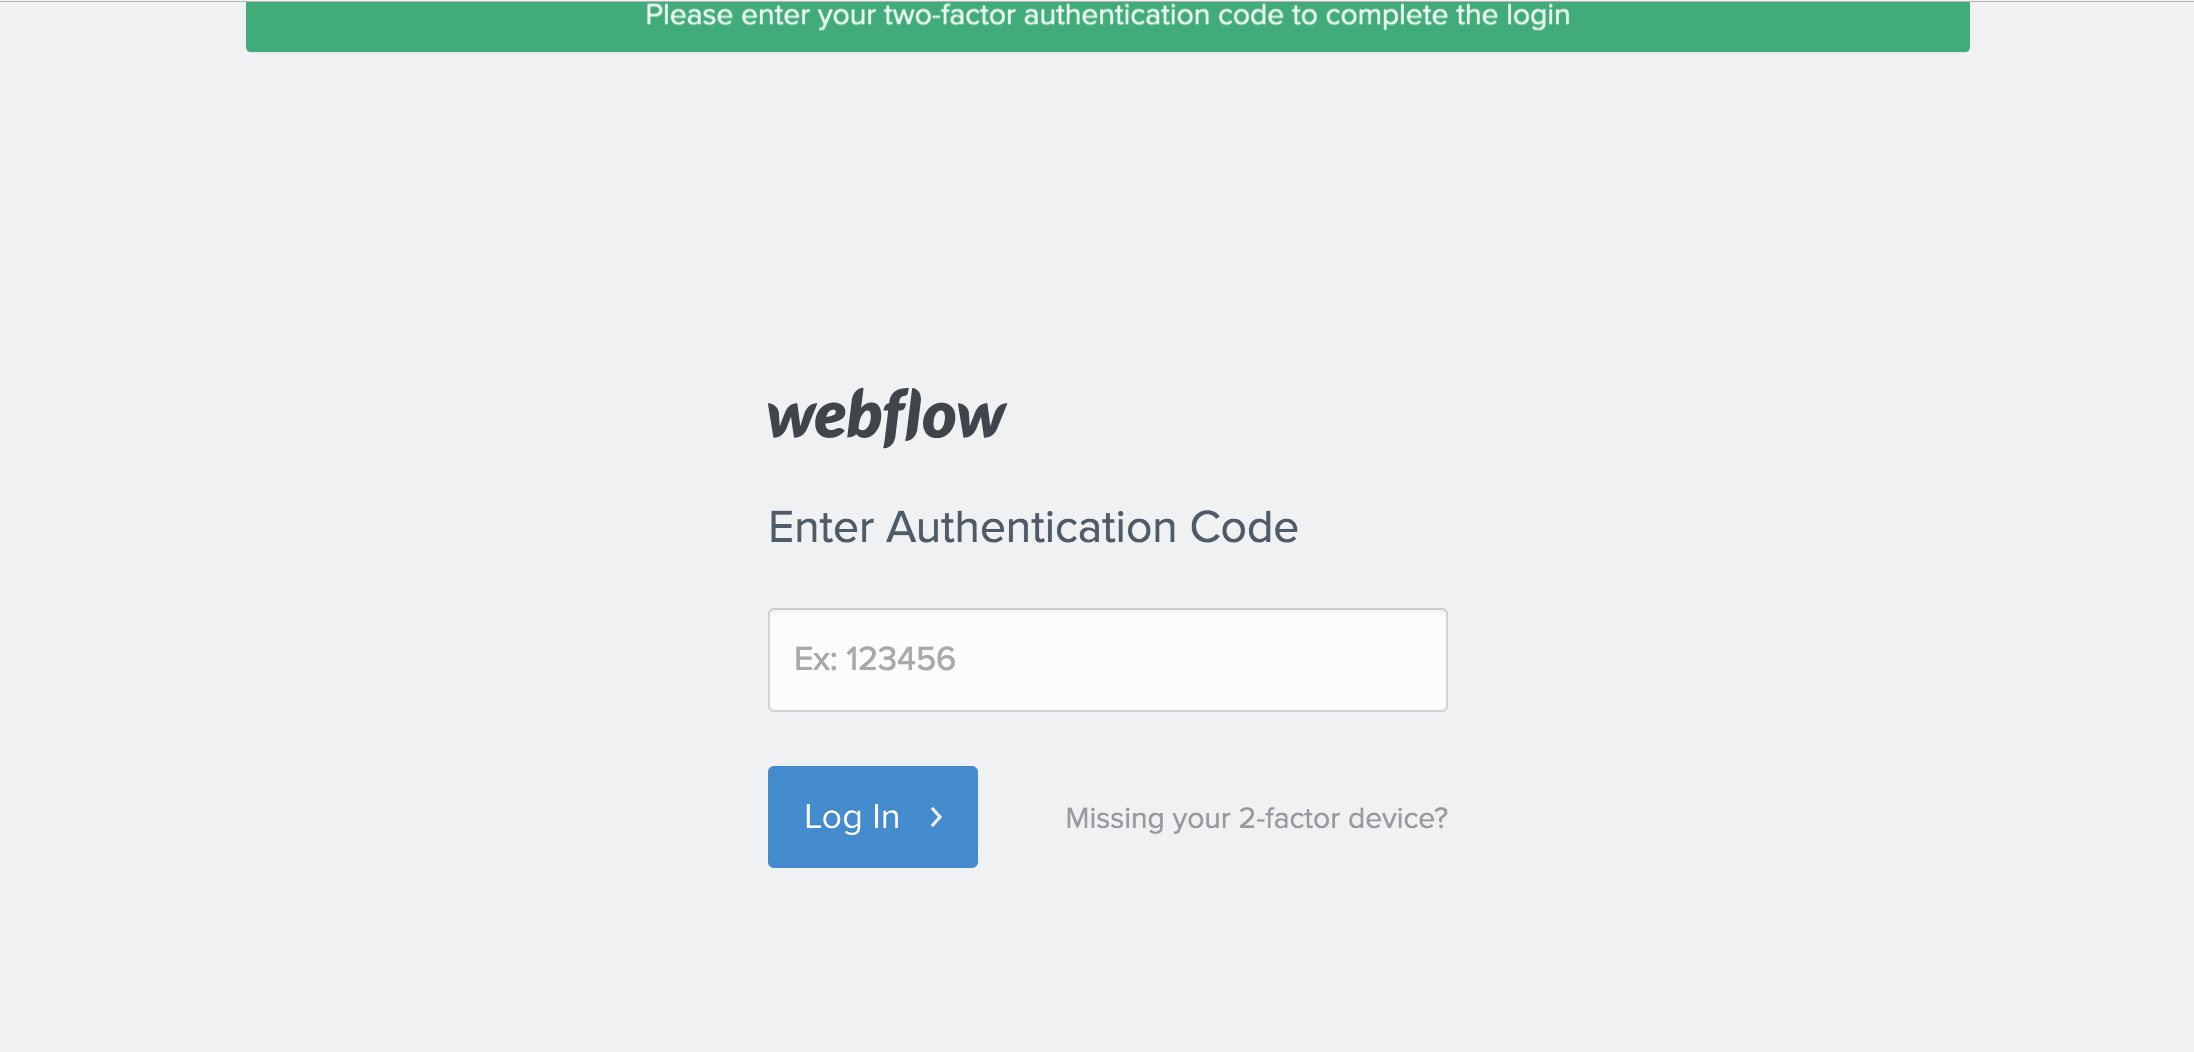 Upon log in, you'll need to enter your current authentication code.